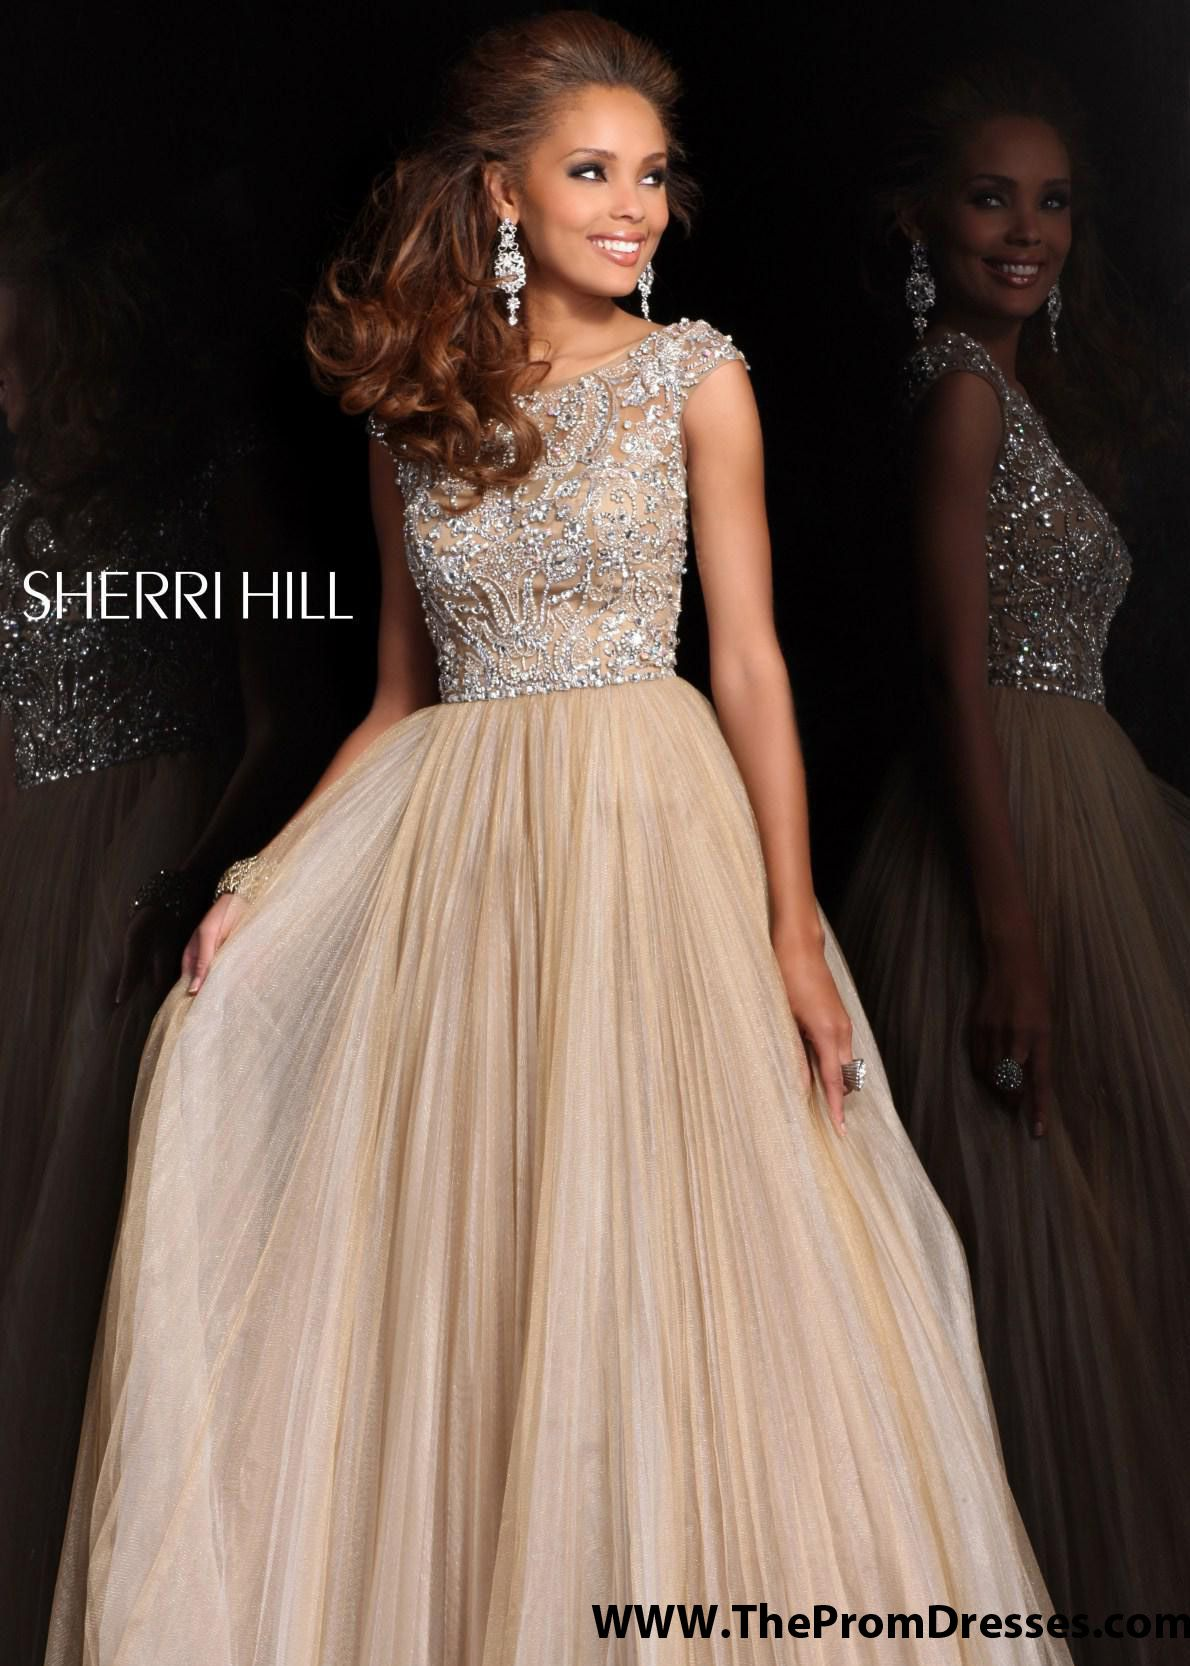 Sherri Hill 2984 - Nude/Silver Beaded Ball Gown Dresses Online ...